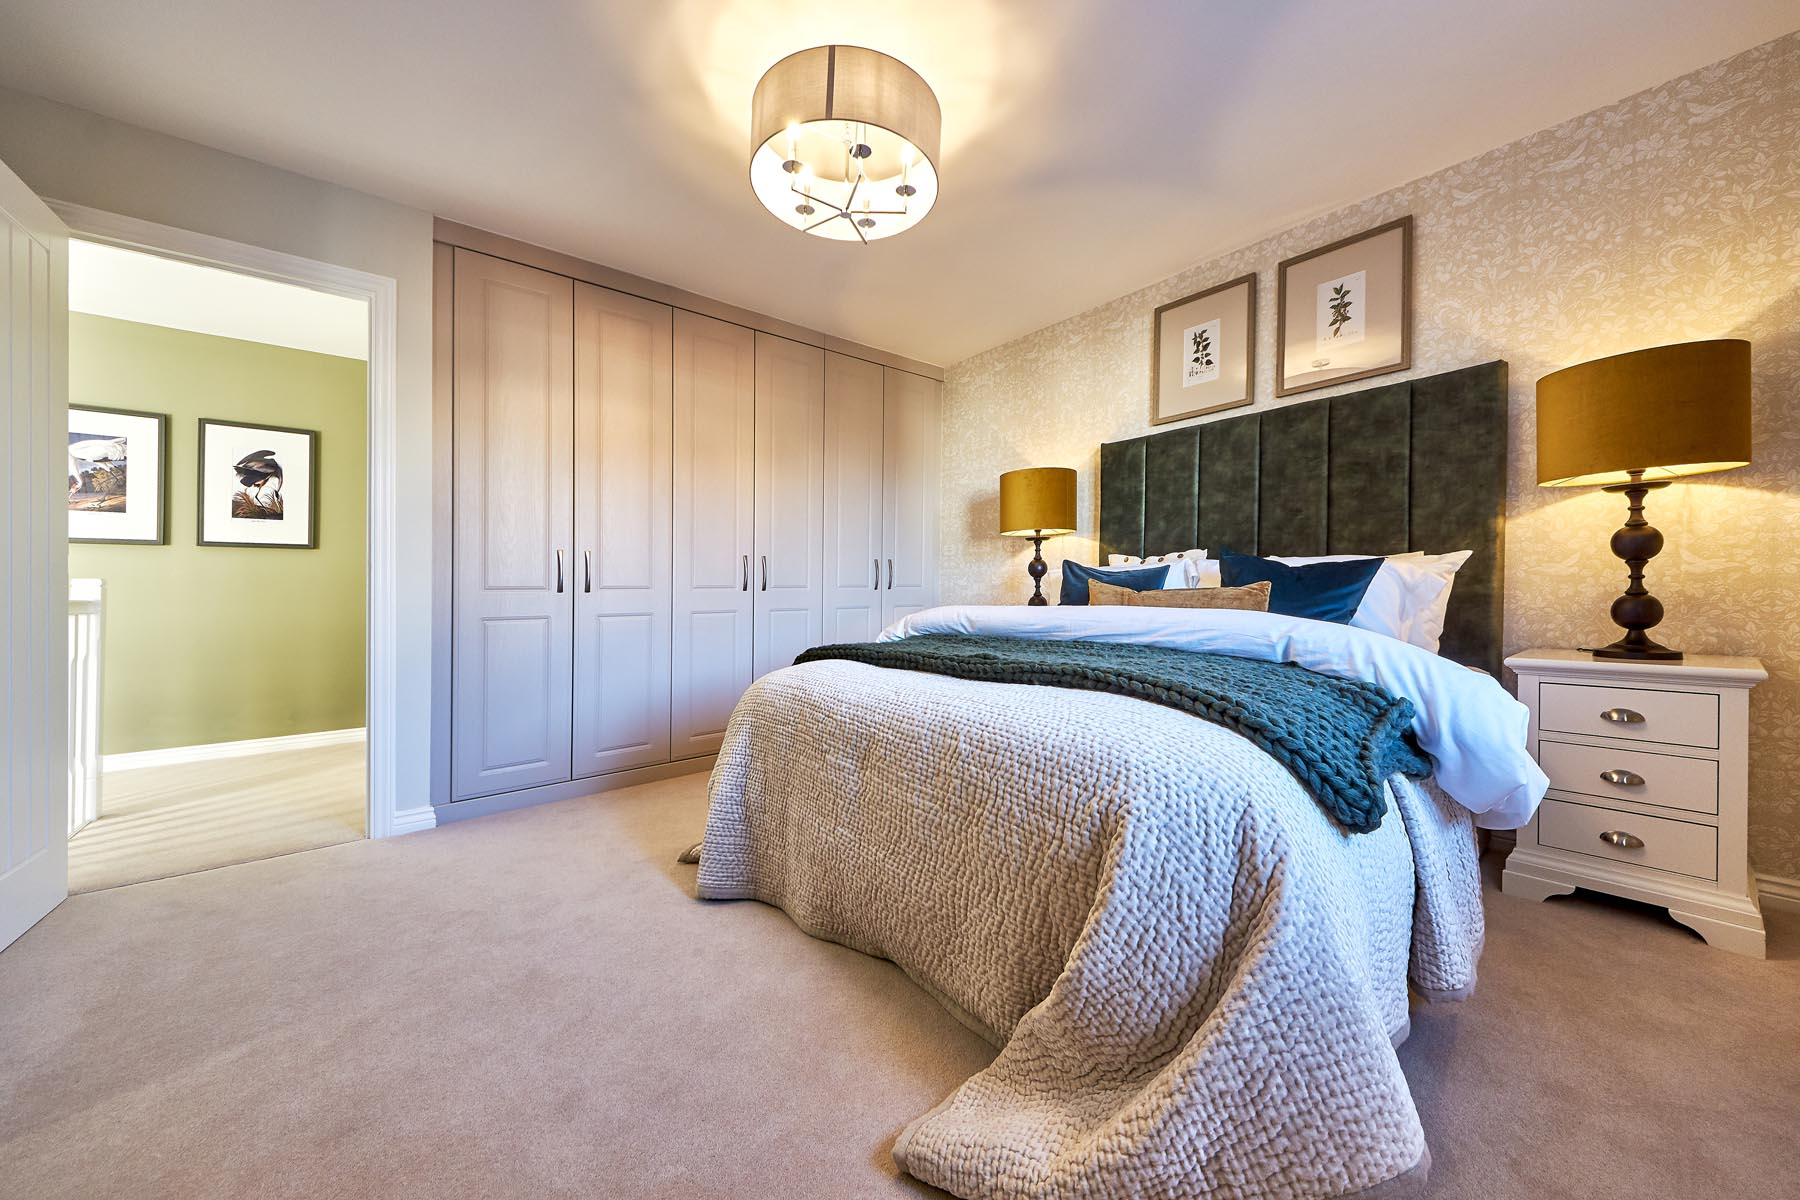 Wheatfield Manor - Heydon - Master bedroom